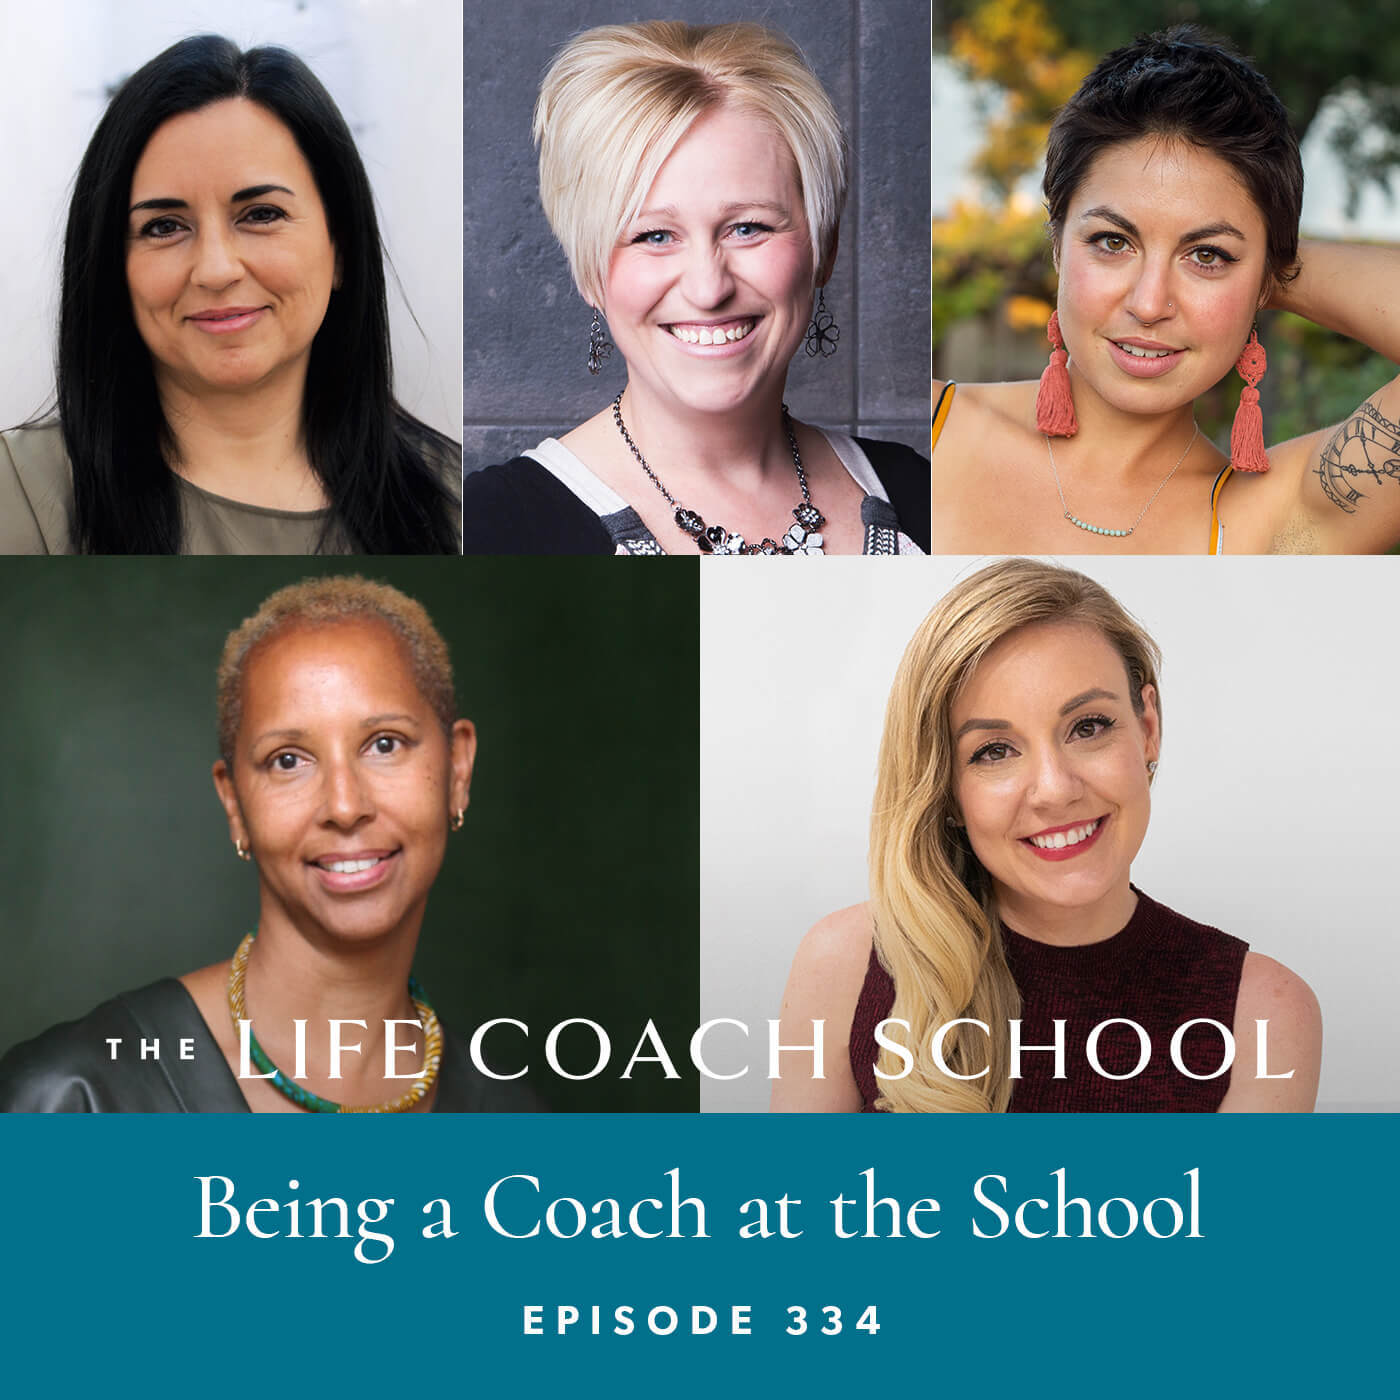 The Life Coach School Podcast with Brooke Castillo | Episode 334 | Being a Coach at the School